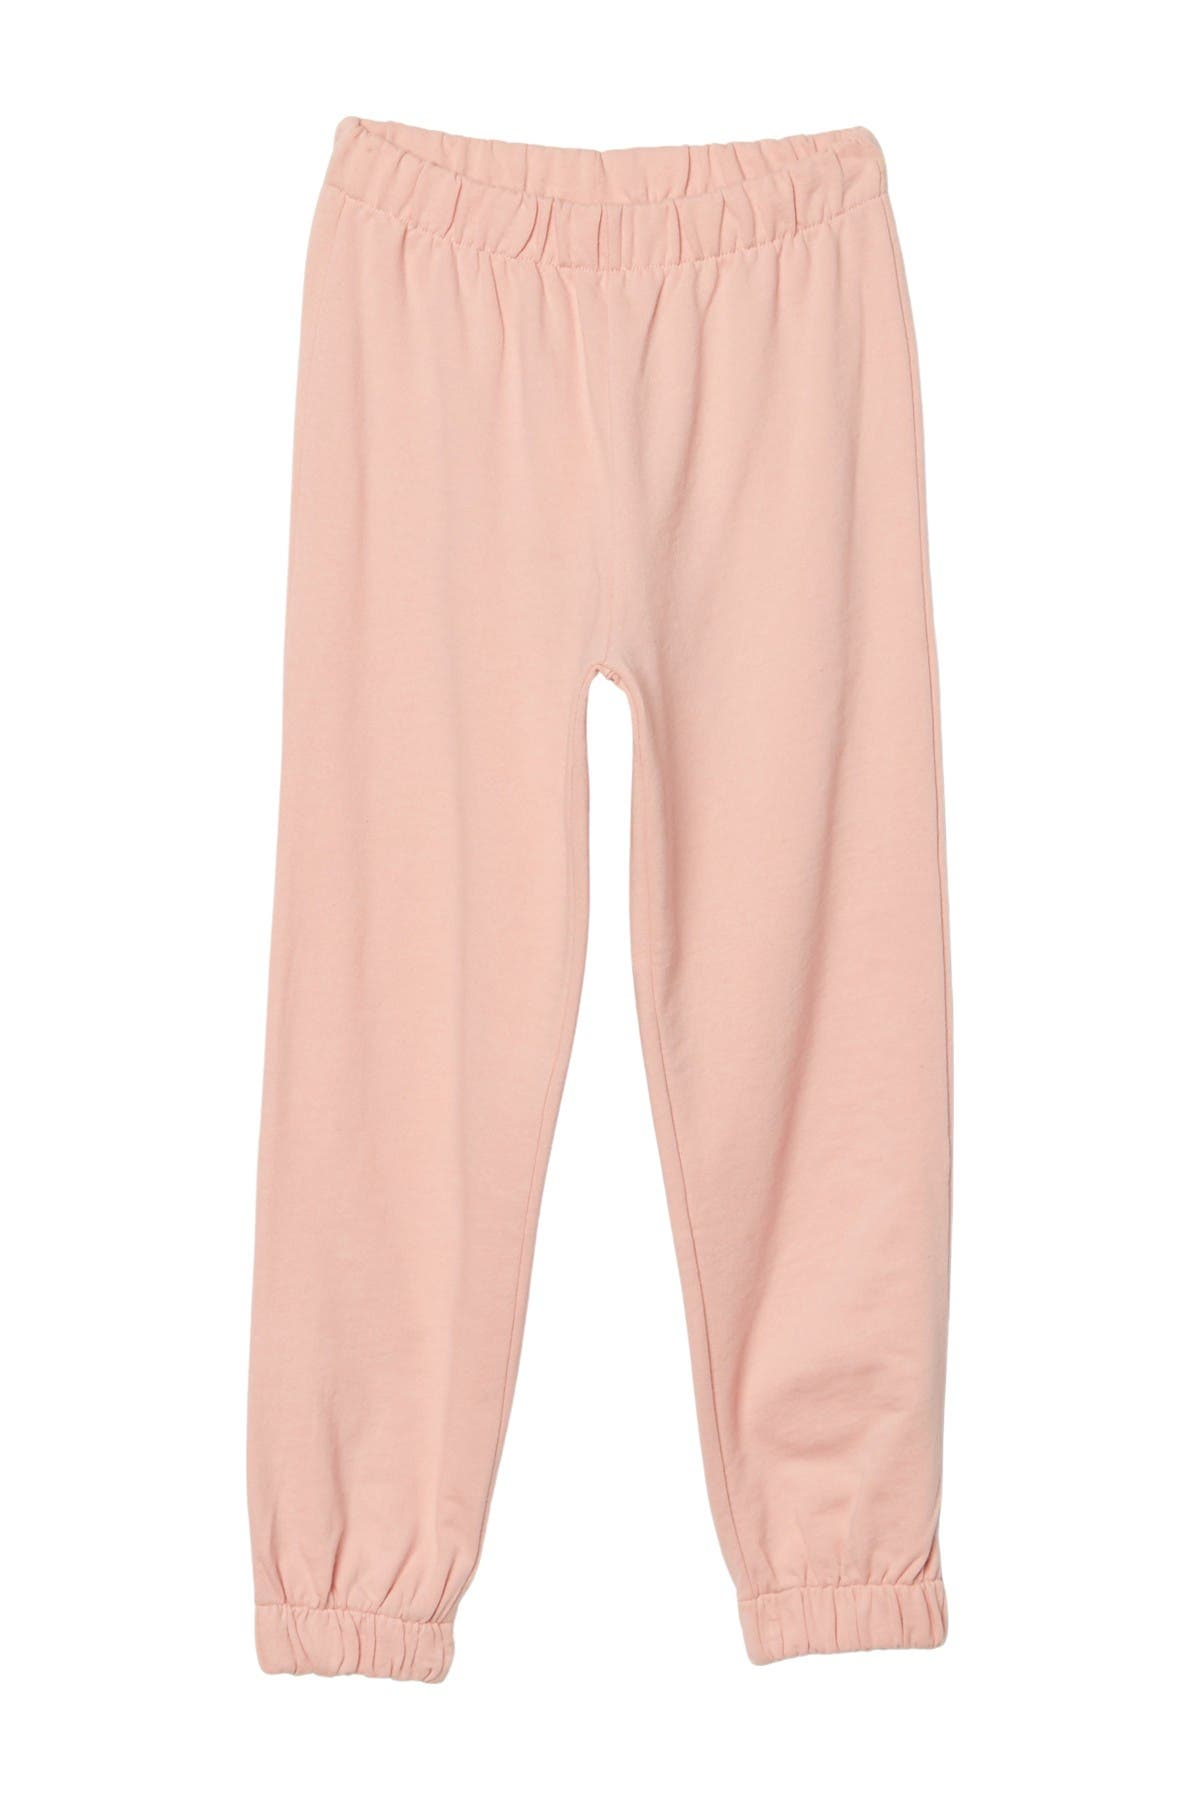 Image of Harper Canyon Easy Going Sweat Pants